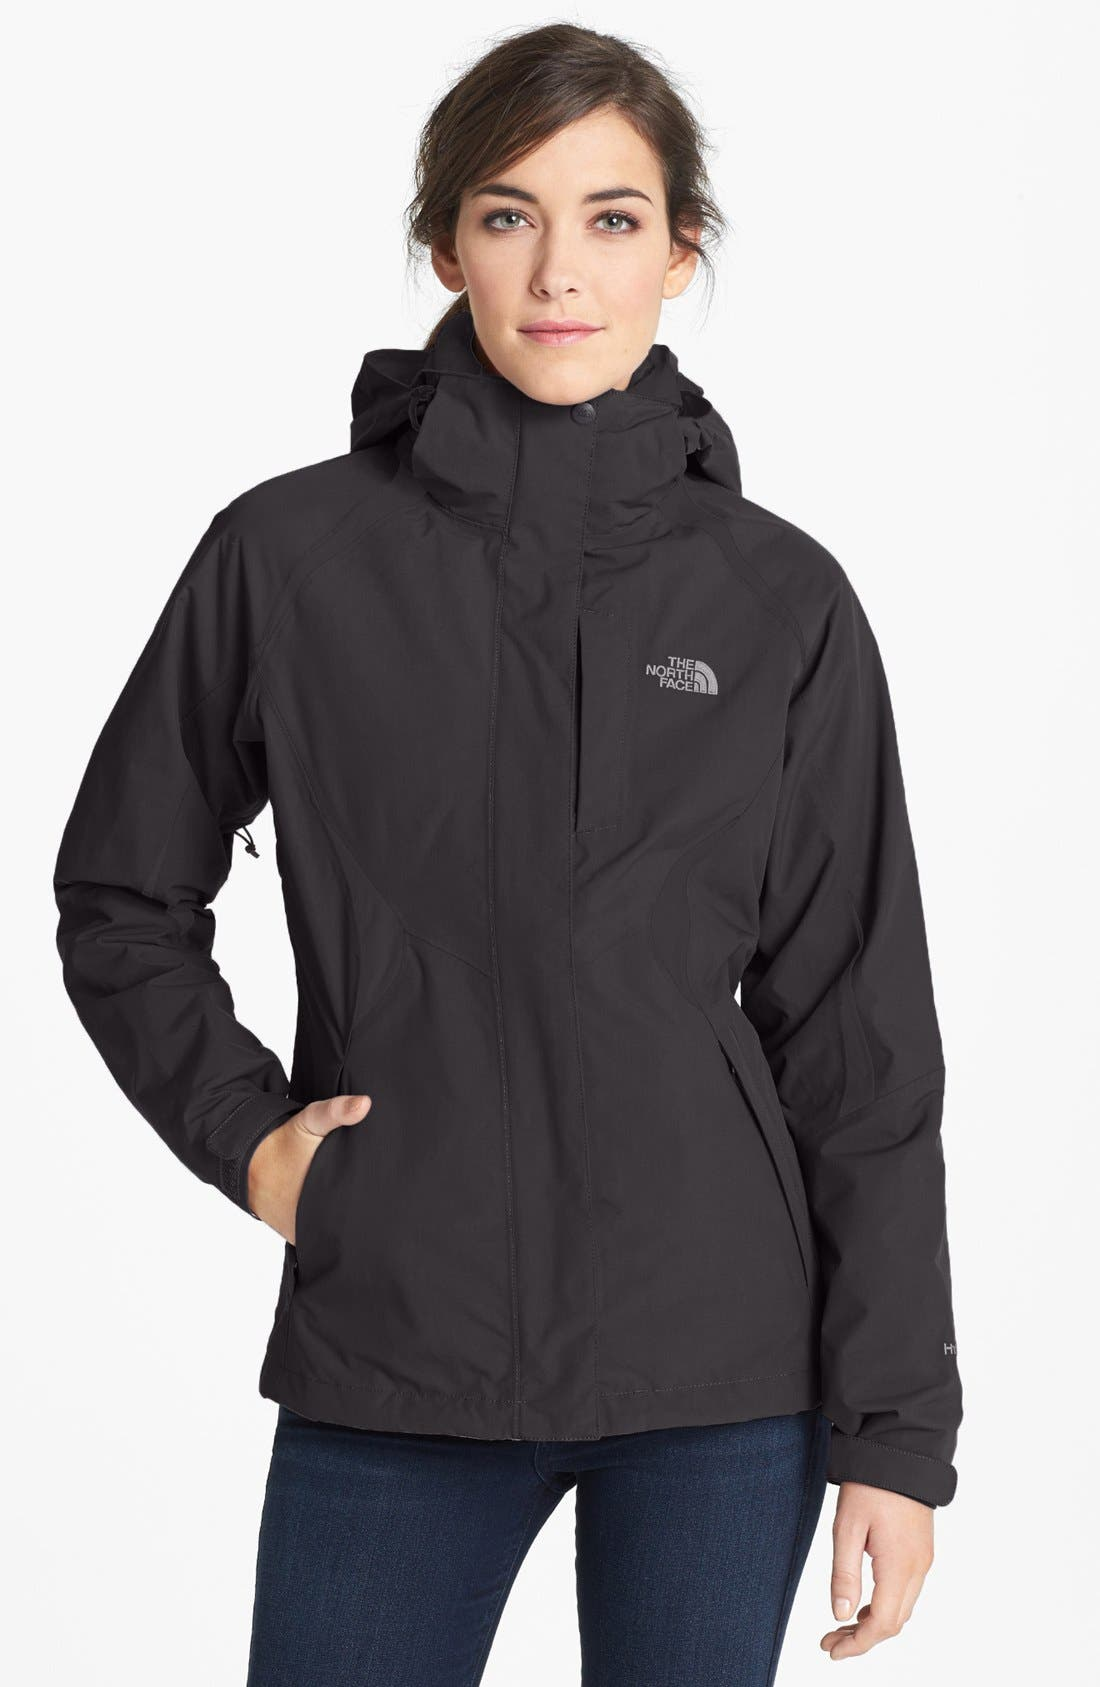 Main Image - The North Face 'Boundary' TriClimate® Hooded 3-in-